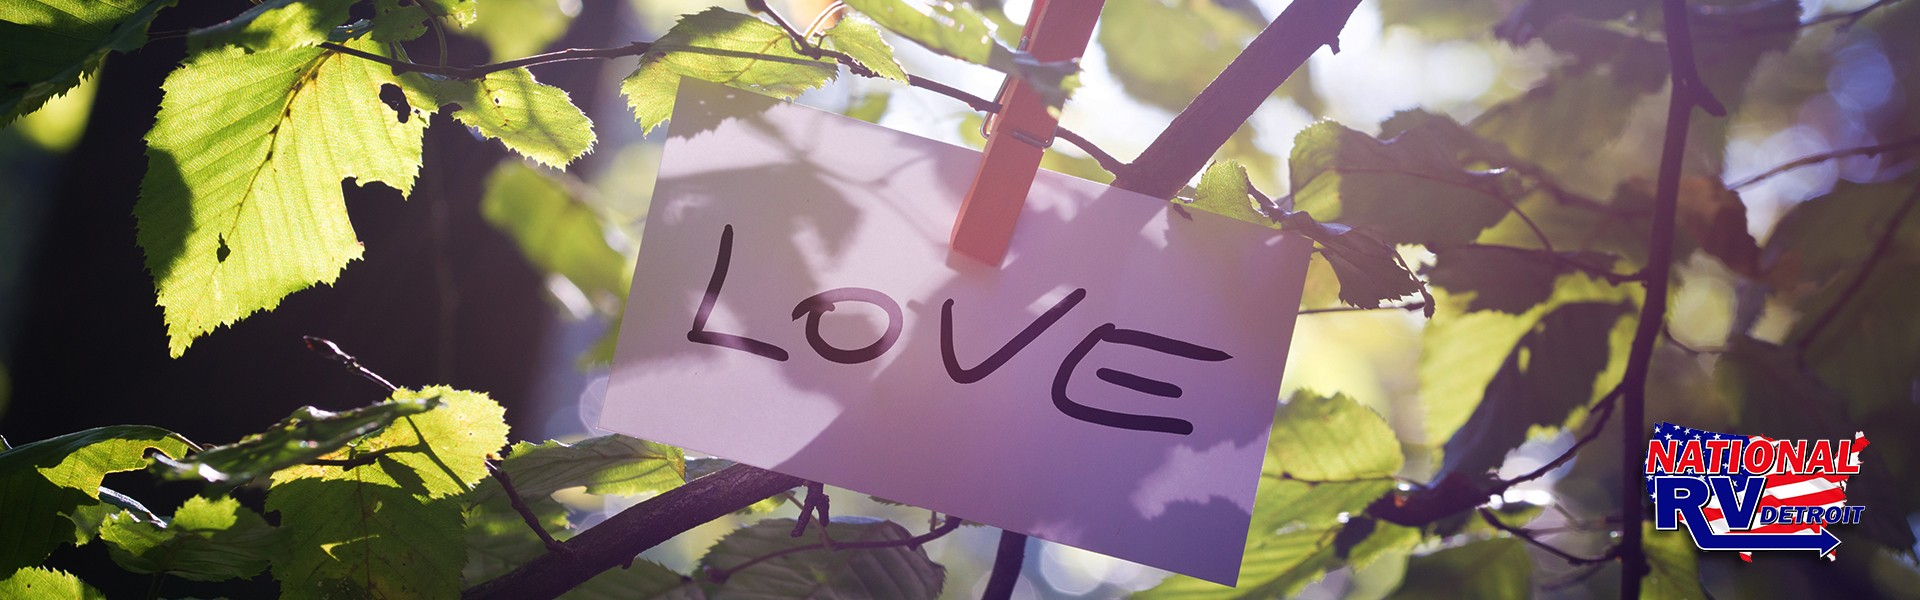 Love note on a tree branch